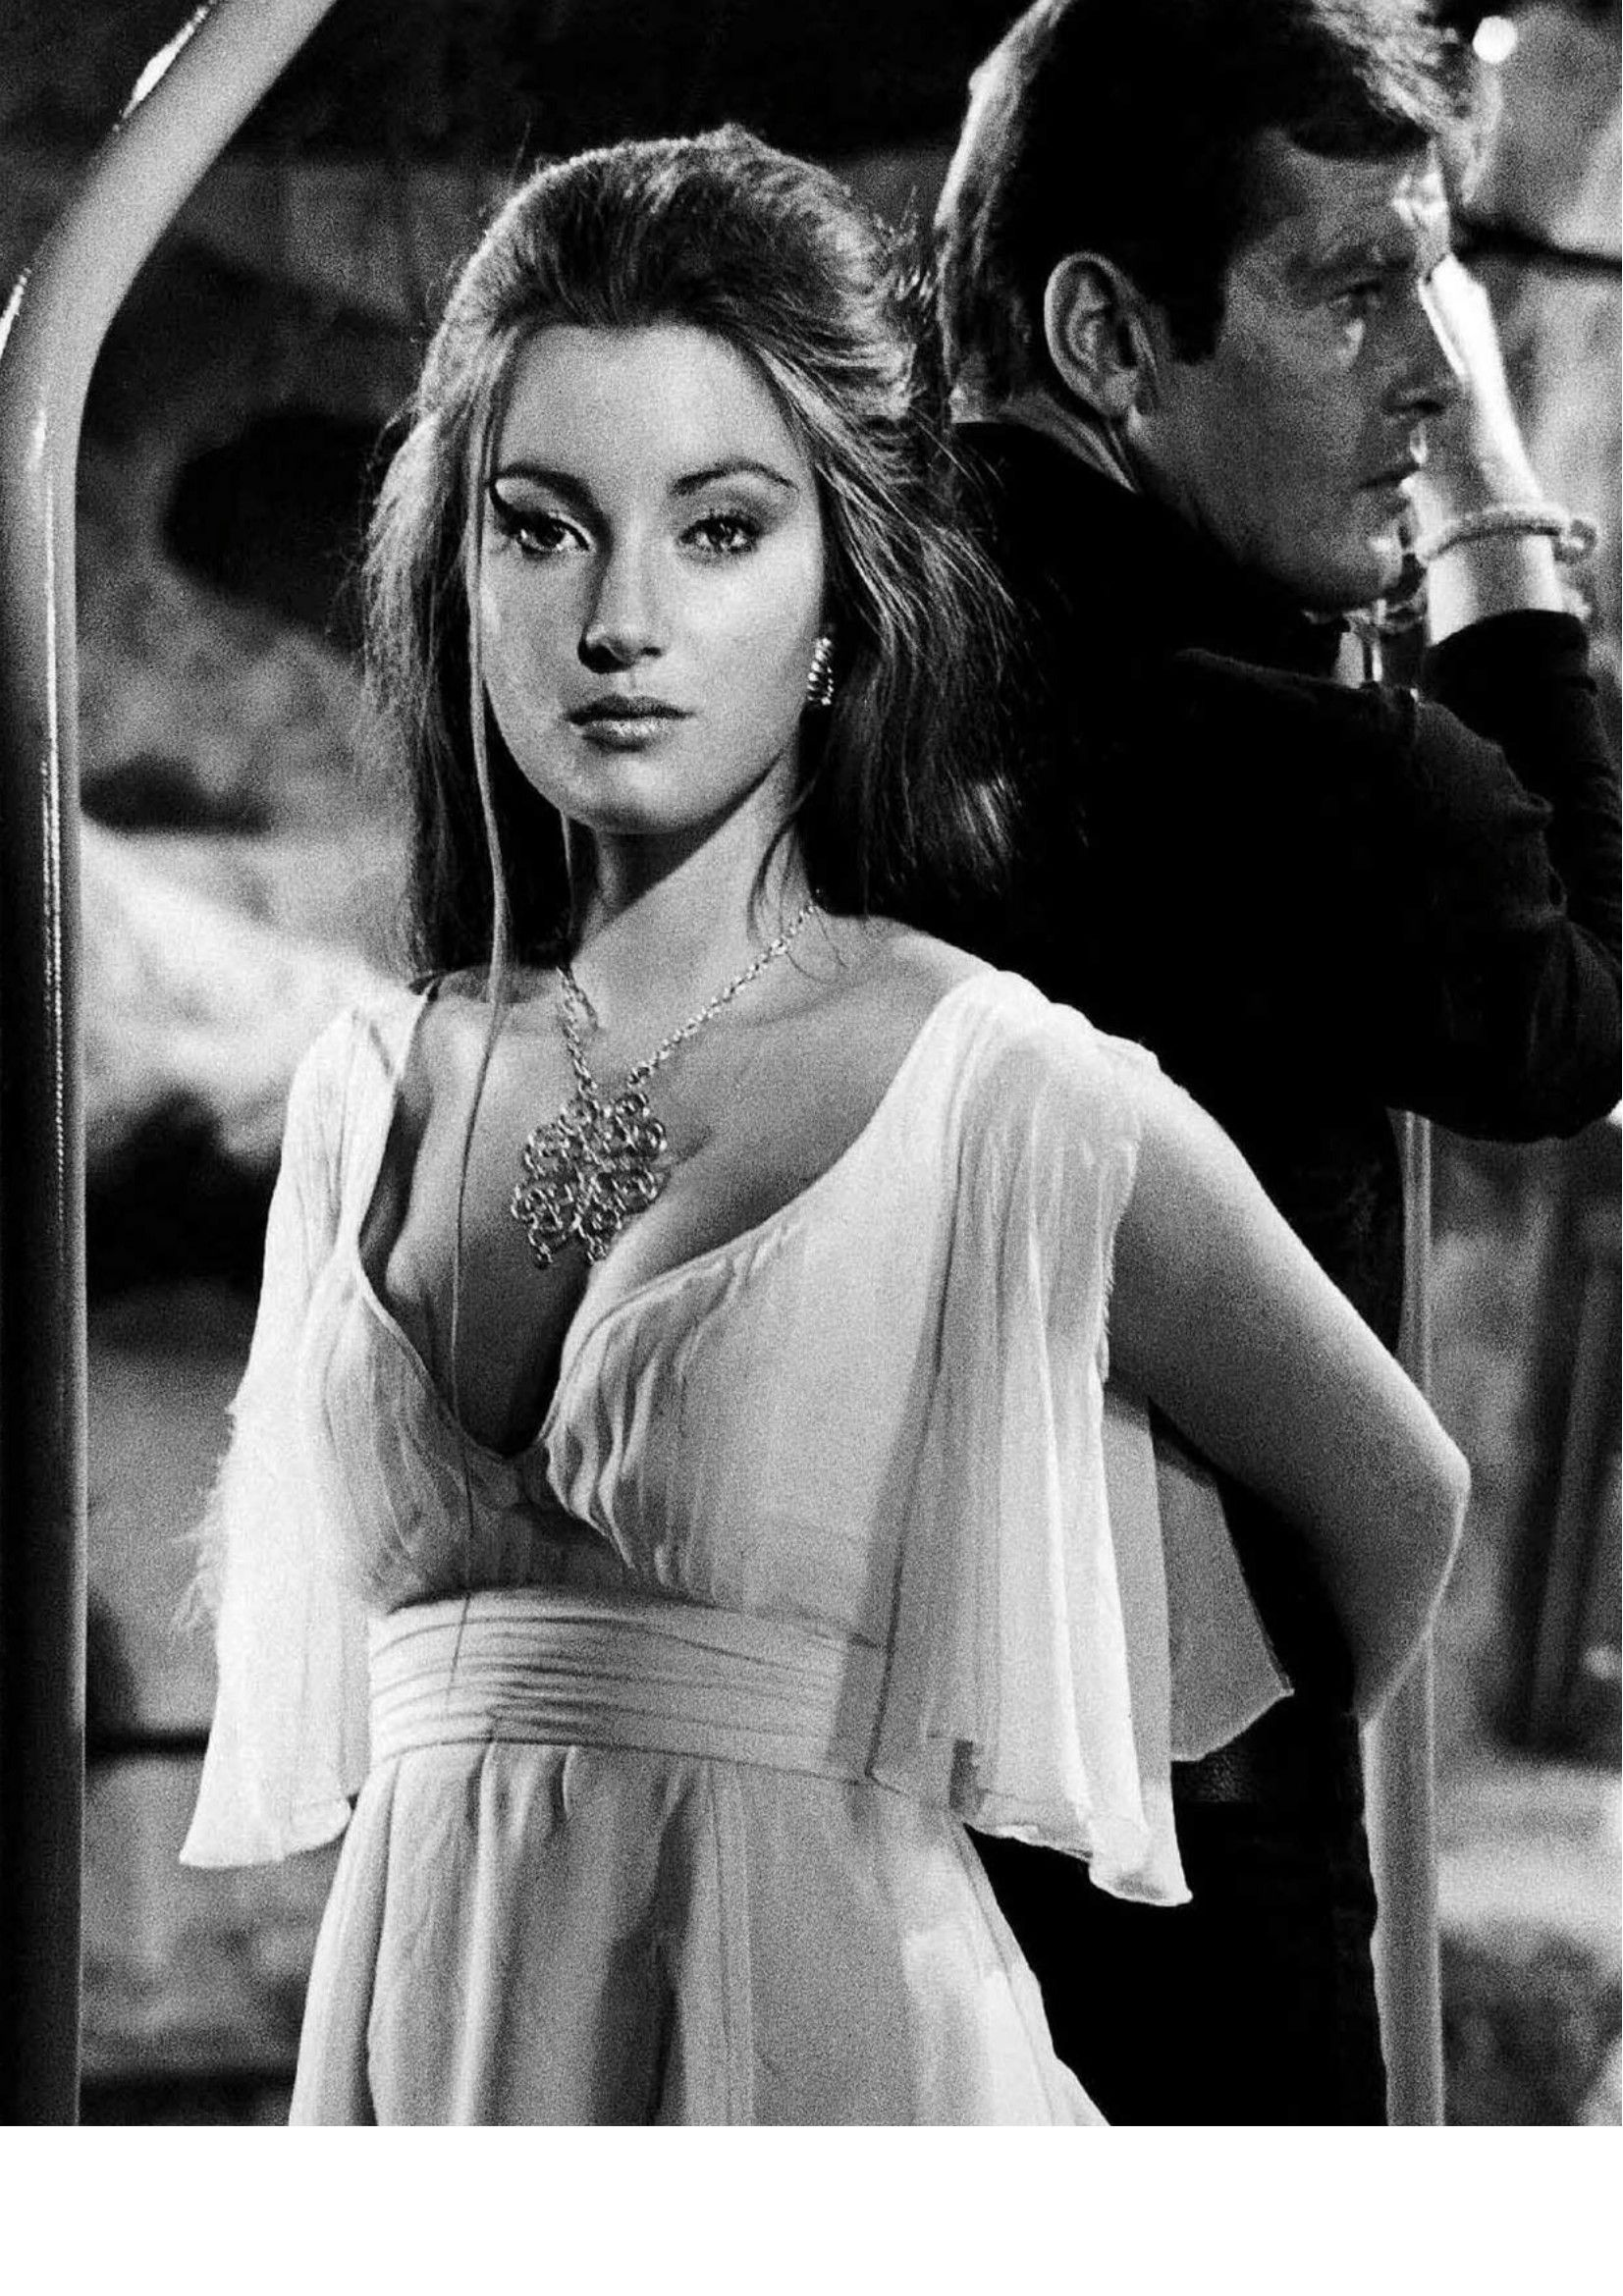 jane seymour and roger moore 1653x2339 pixels 007